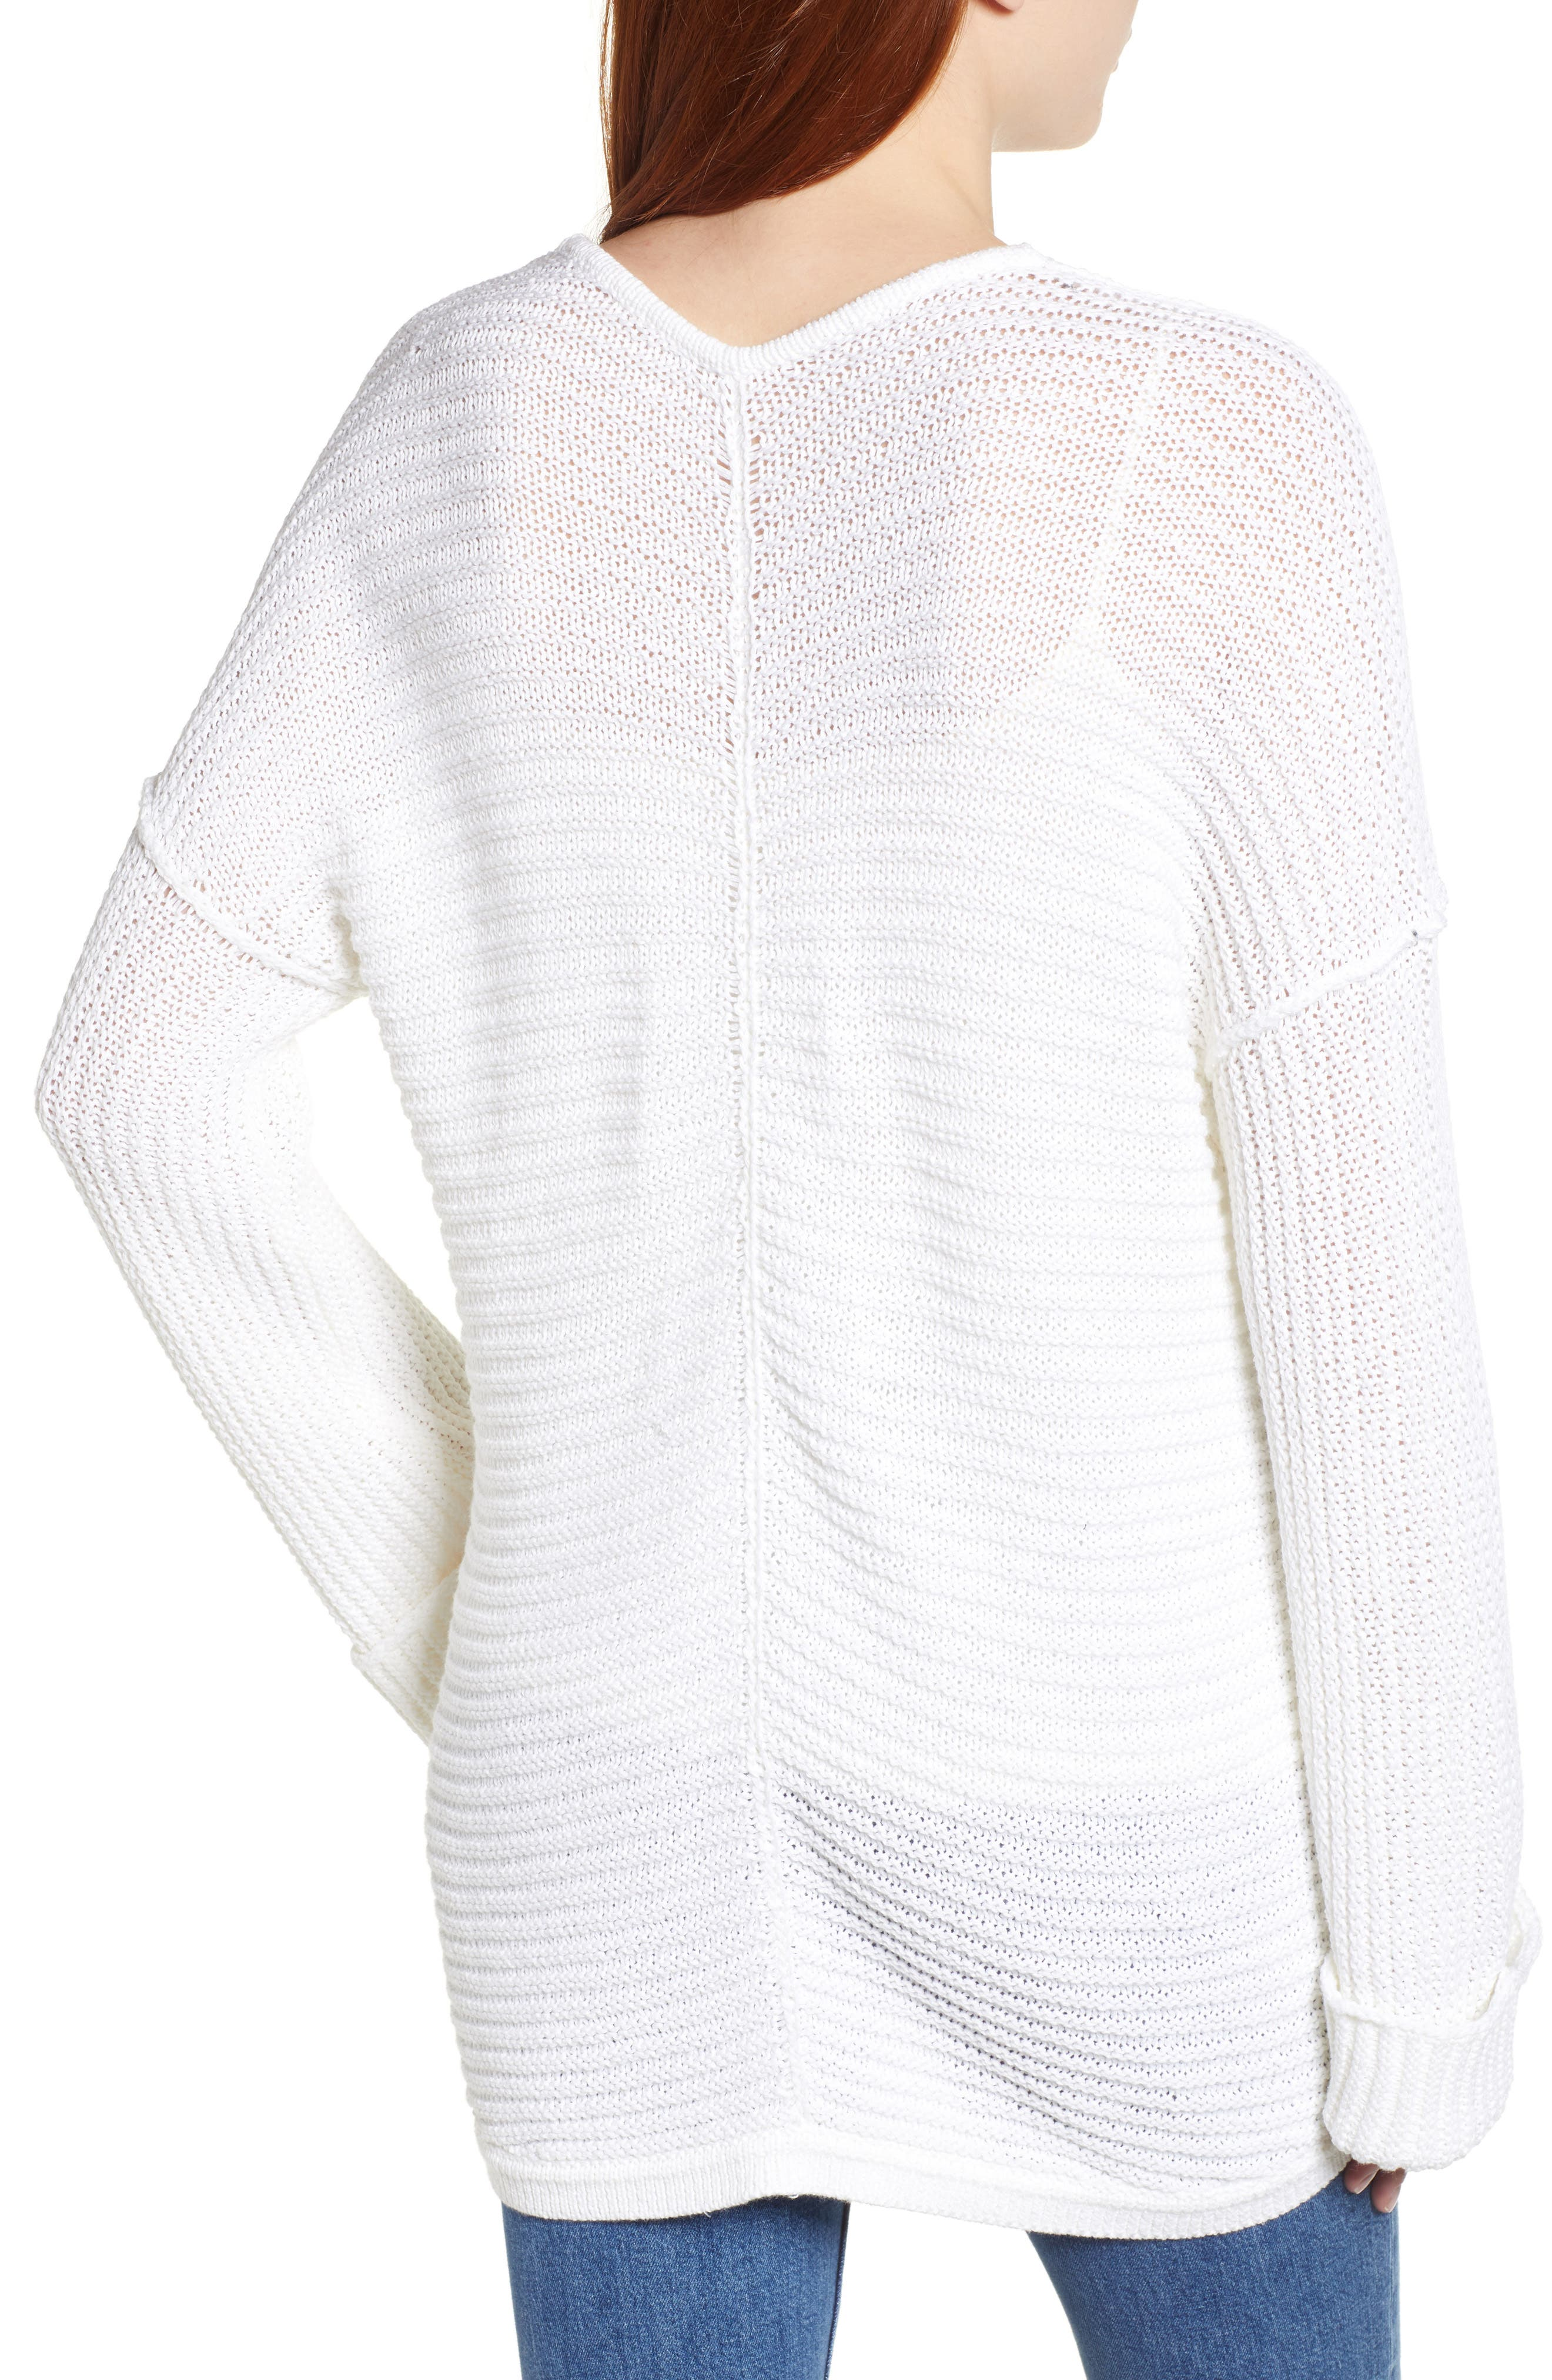 Cuffed Sleeve Sweater,                             Alternate thumbnail 2, color,                             100